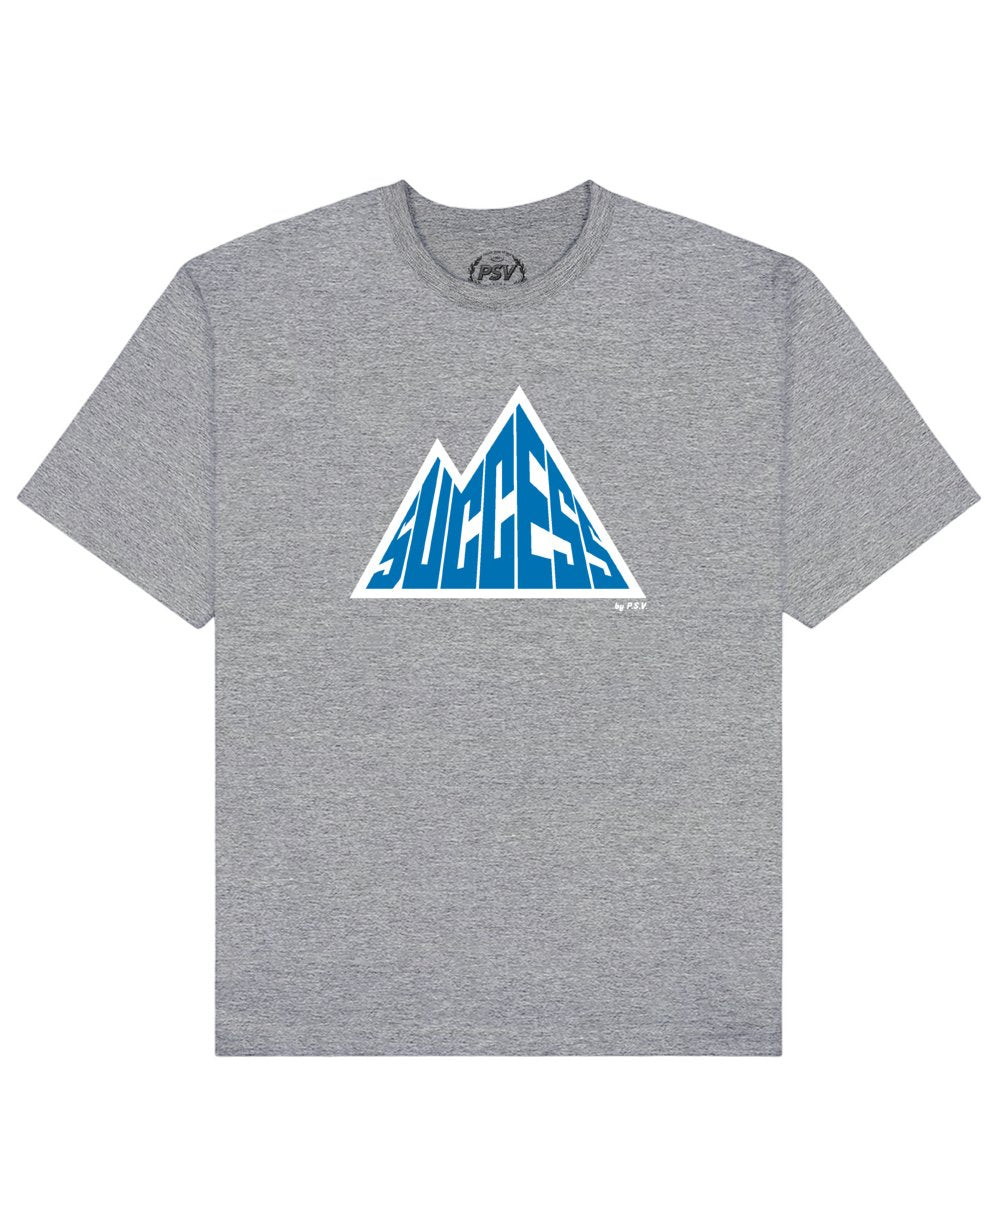 Success is a Mountain Print T-Shirt in Gray - T-Shirts - PSV - BRANMA